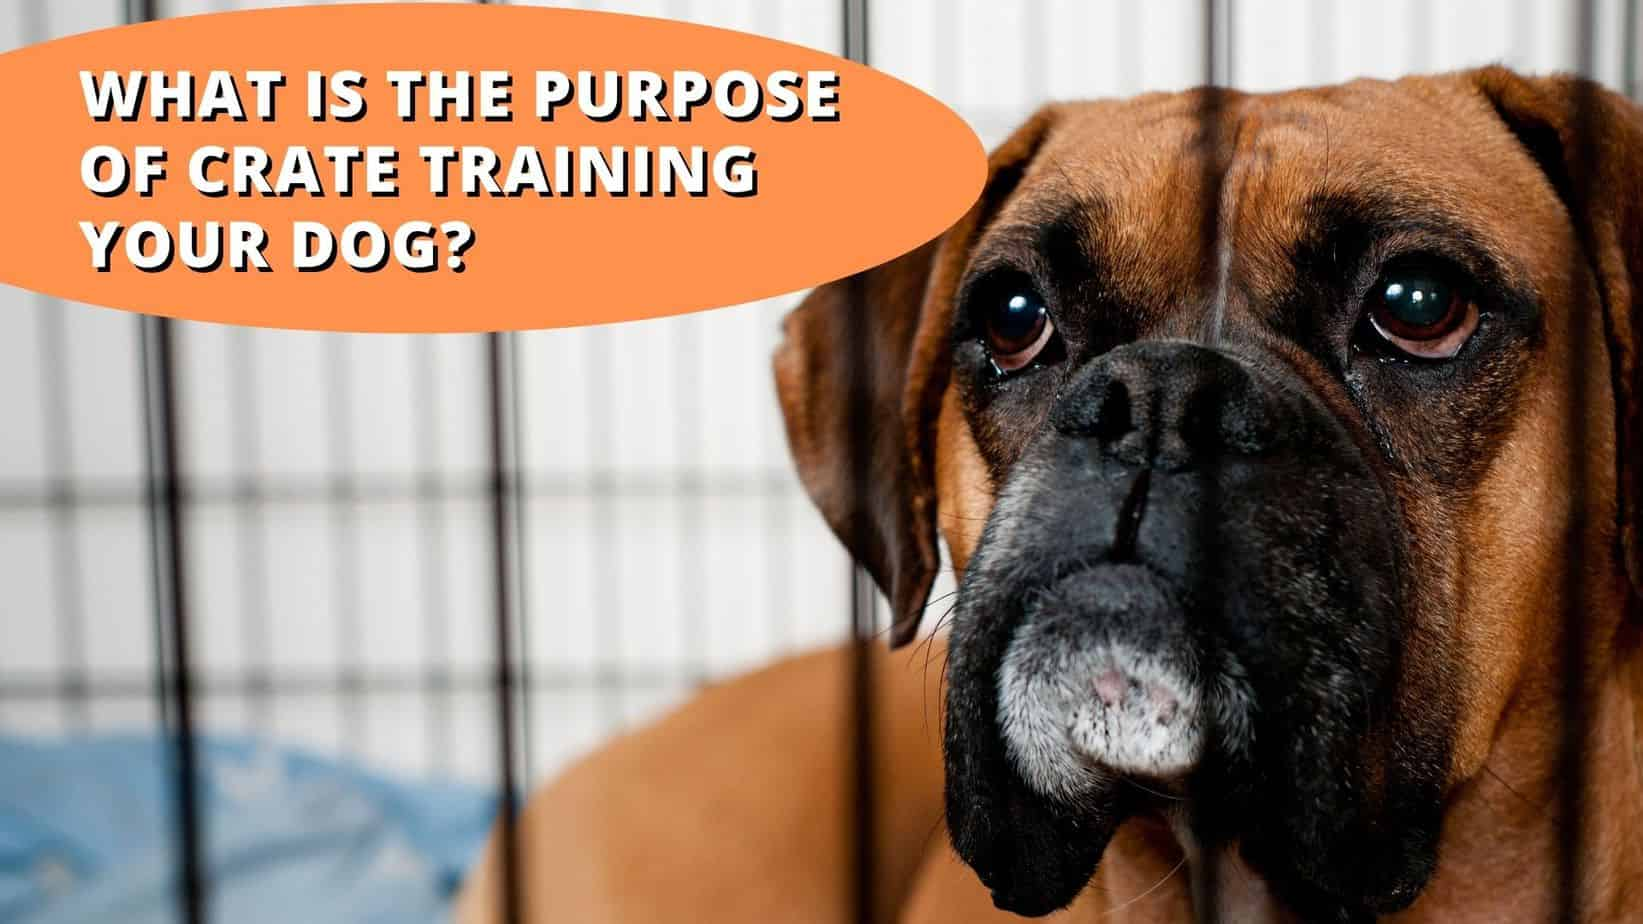 What's the Purpose of Crate Training Your Dog